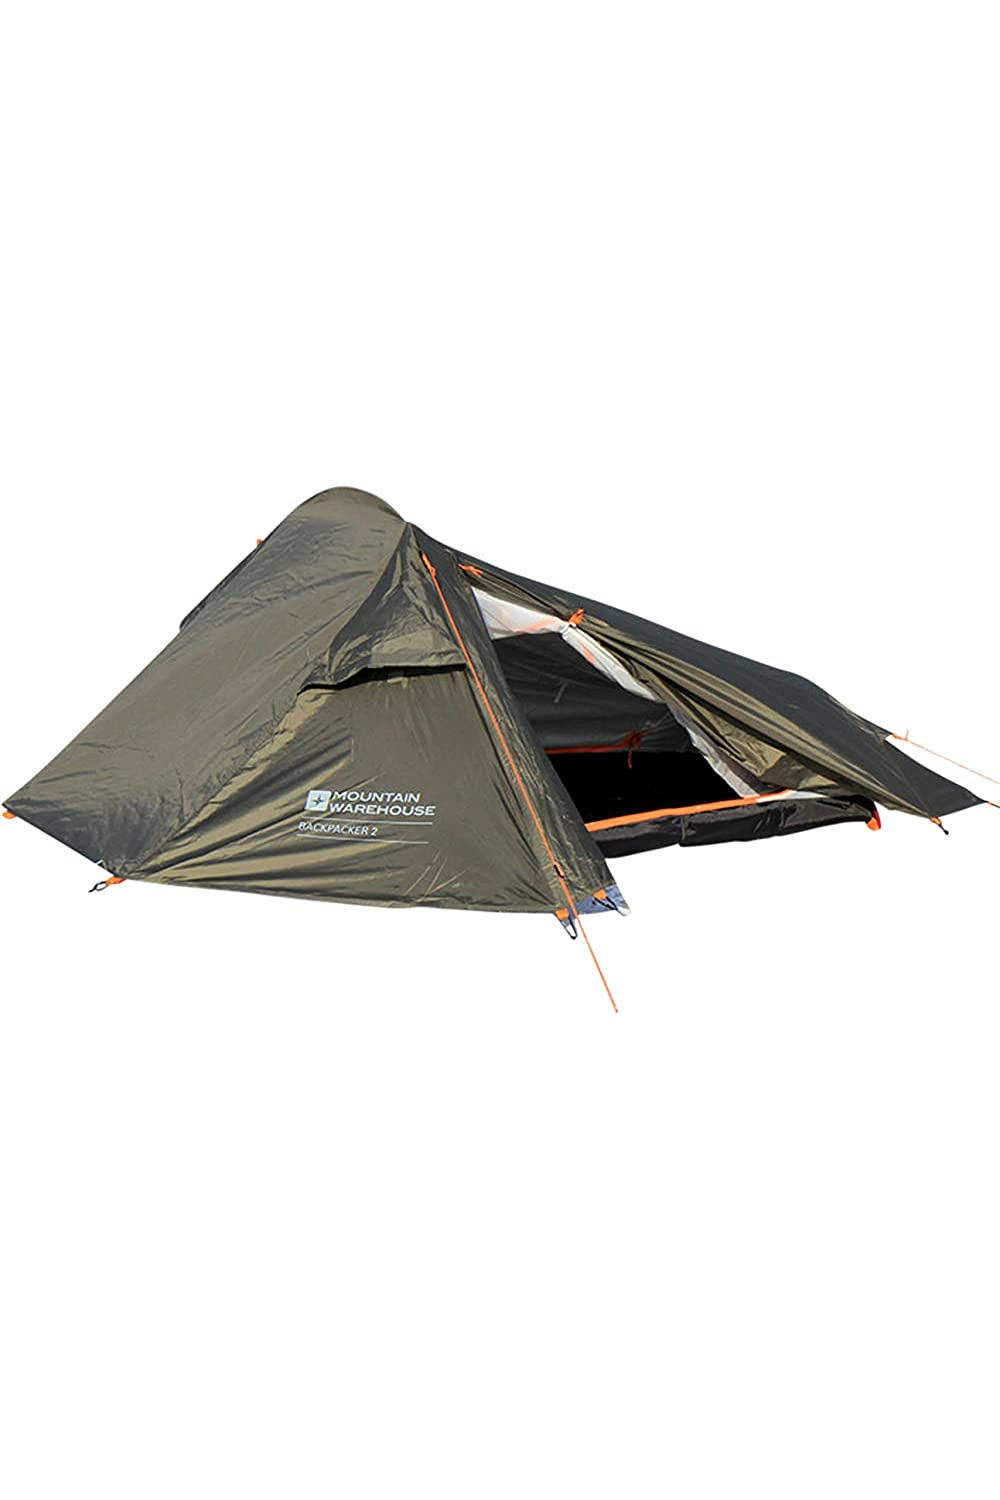 5. Mountain Warehouse 2 Man Backpacker Tent